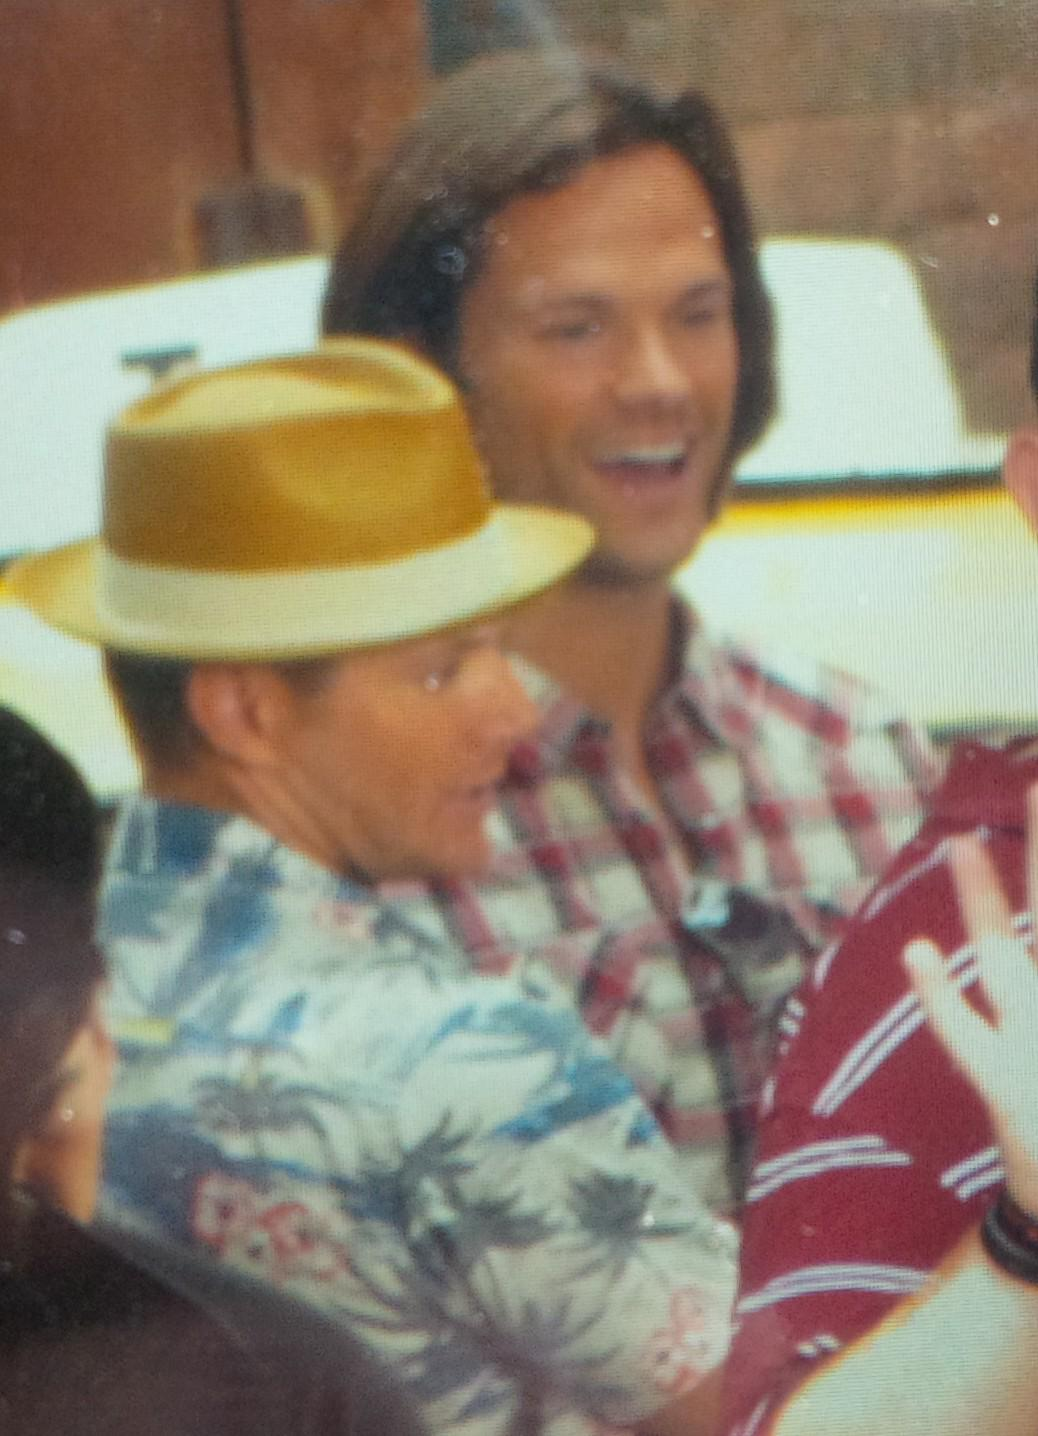 RT @canadagraphs: #Supernatural stars Jared Padalecki and Jensen Ackles, with his directors hat on? #SPN http://t.co/X8BONV0HCo